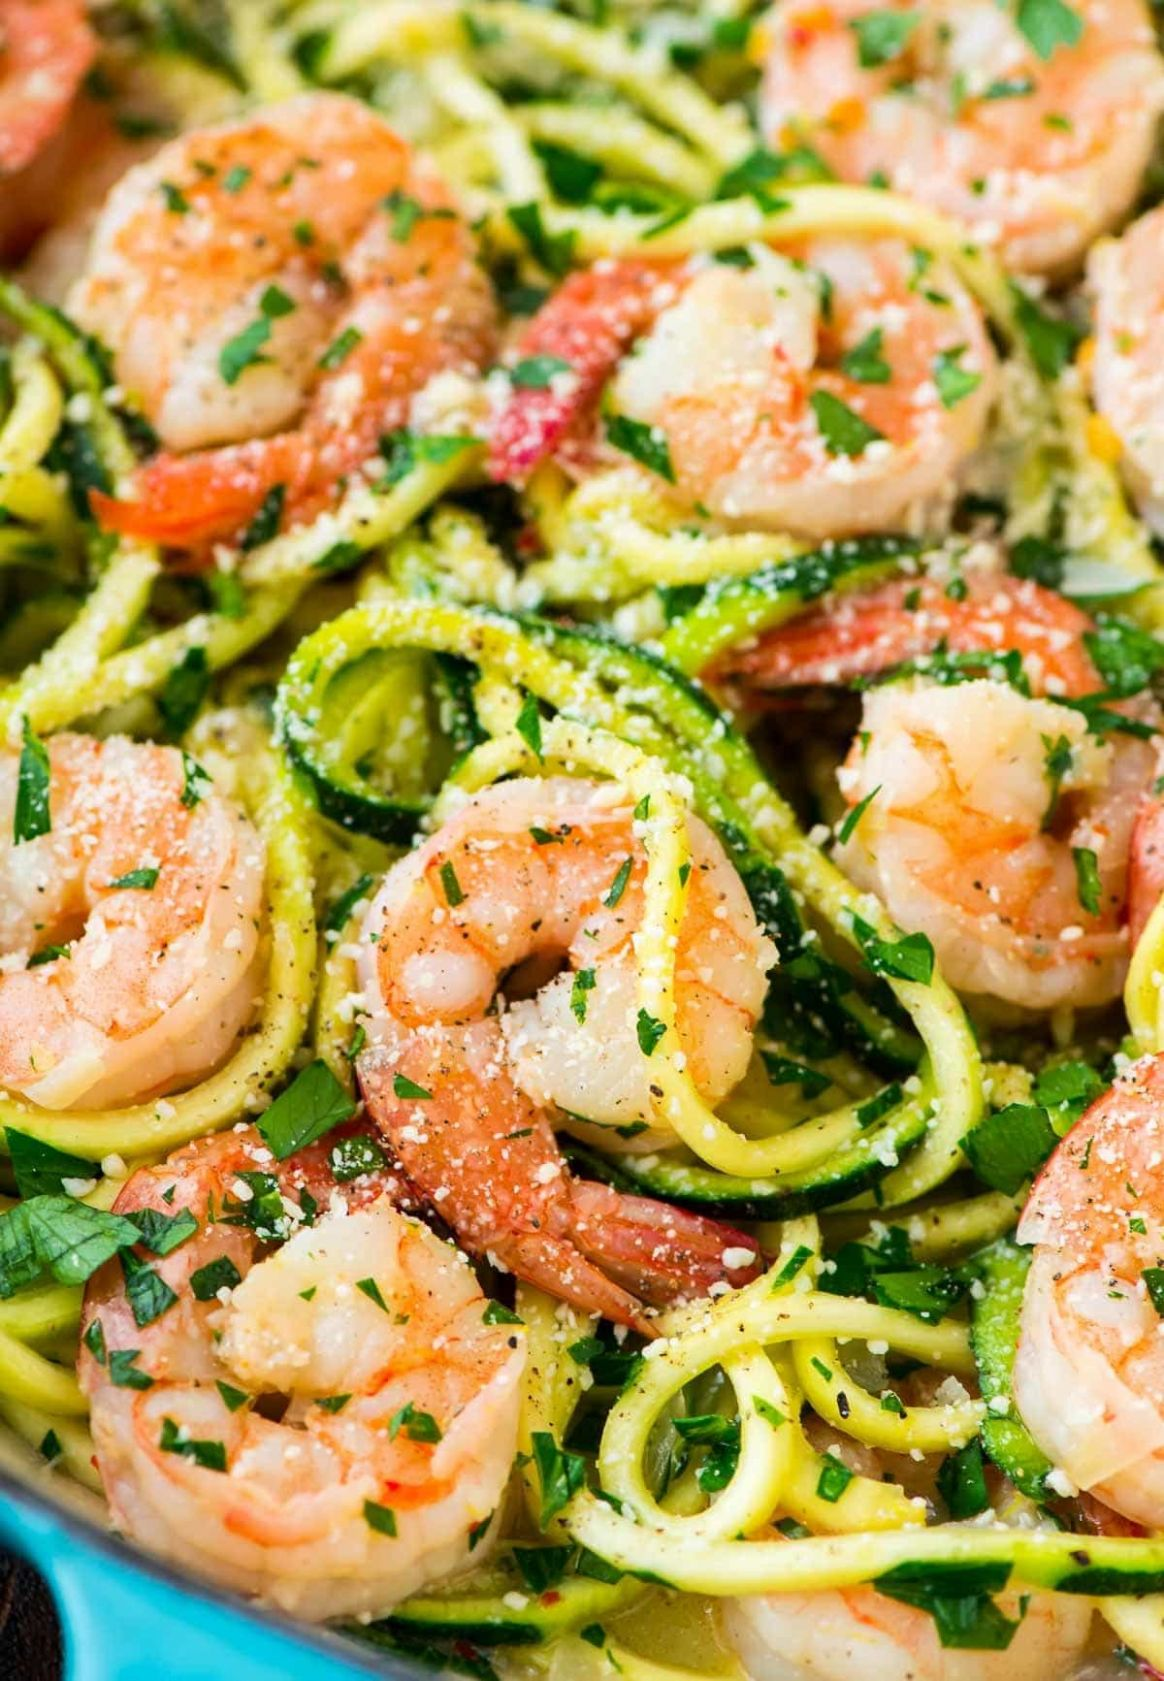 Healthy Shrimp Scampi with Zucchini Noodles - Healthy Dinner Recipes Zucchini